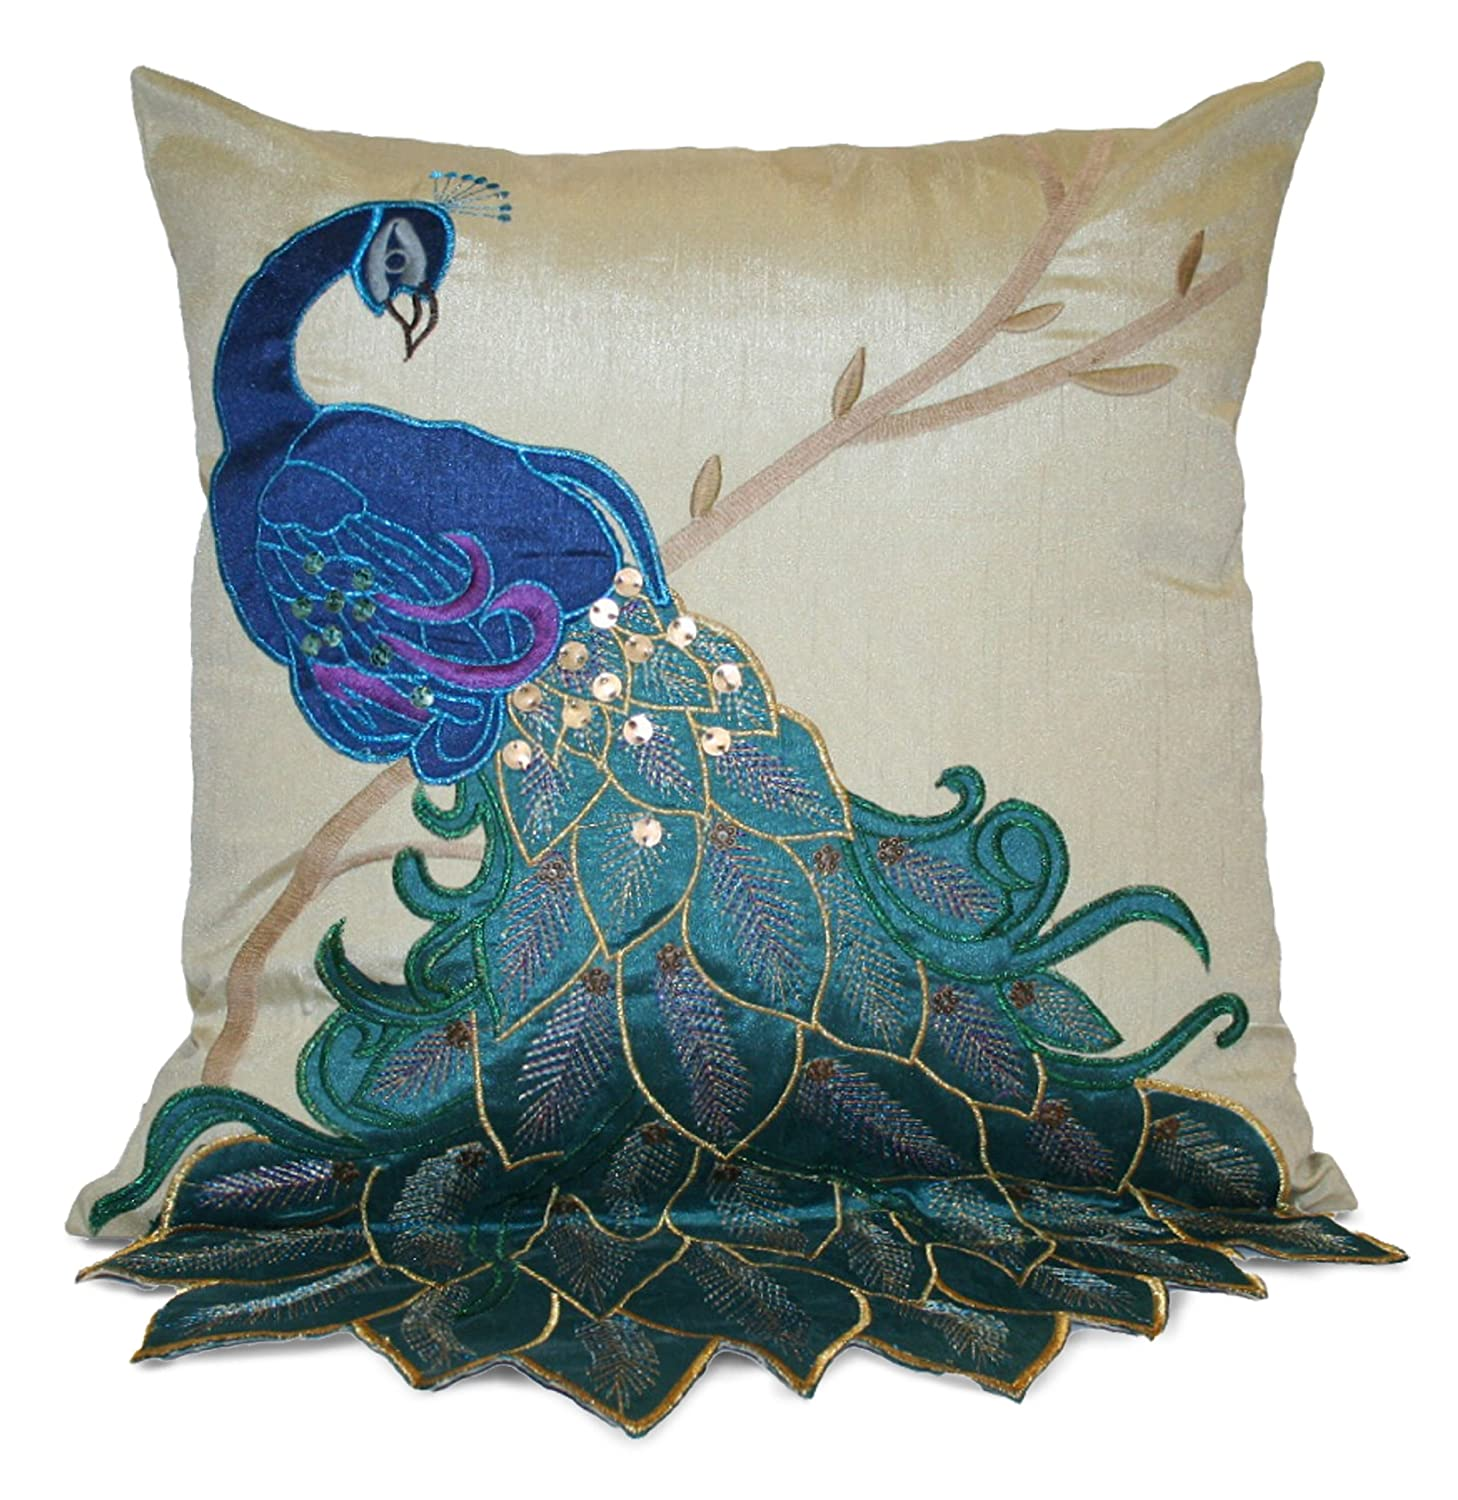 Peacock Bedroom Decorating Ideas Beautiful Peacock Pillows And Bedding Sets For Your Home